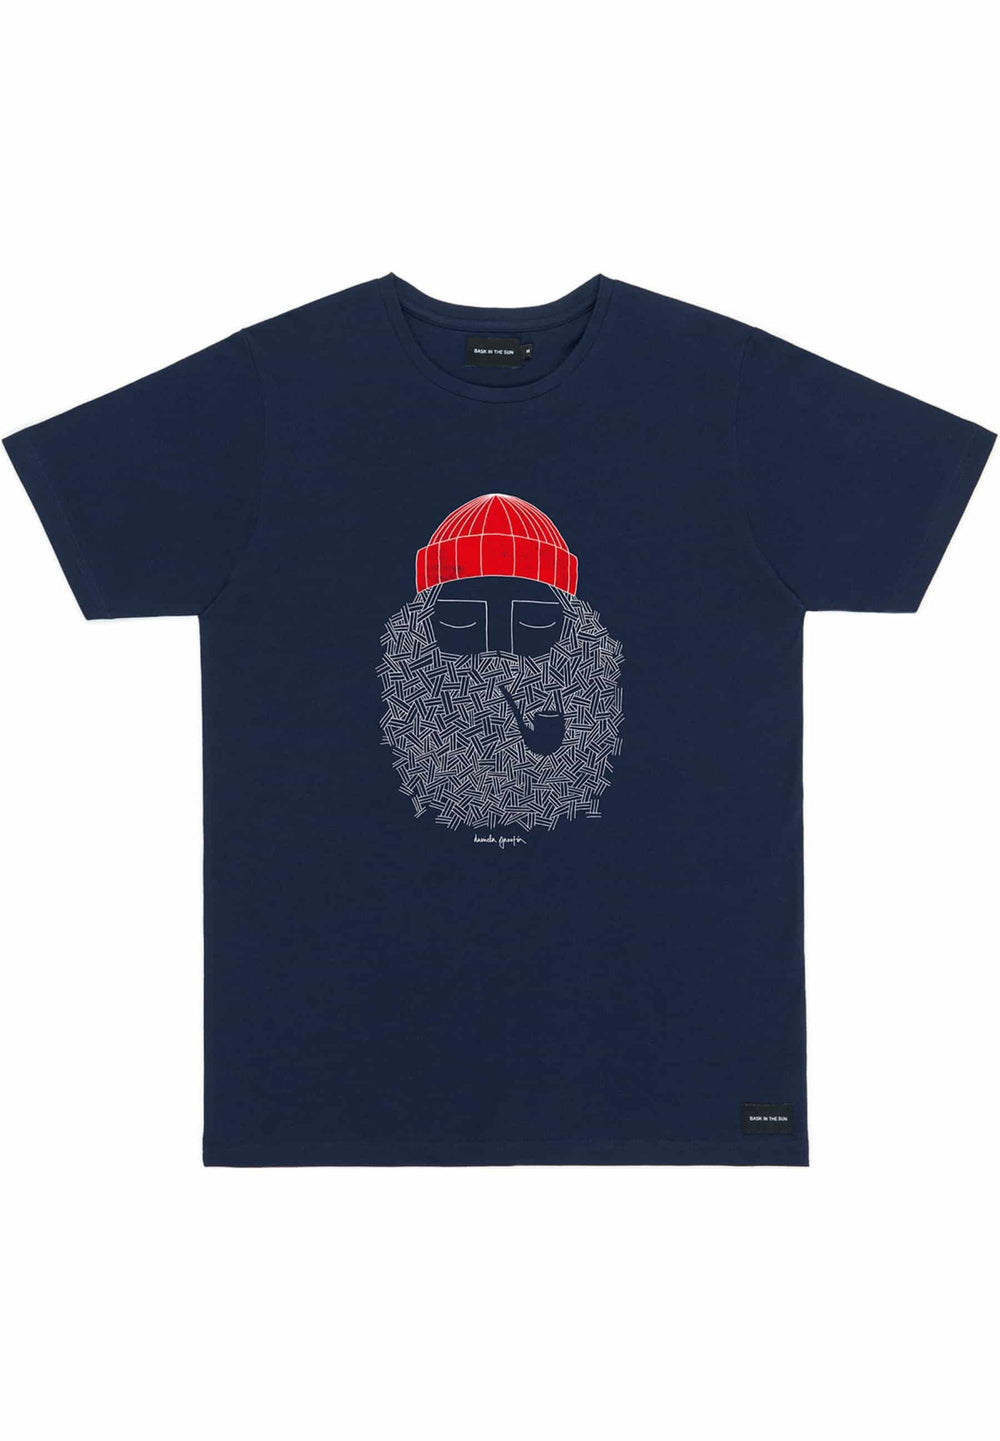 BASK IN THE SUN T-shirts T-shirt Smoking Pipe navy